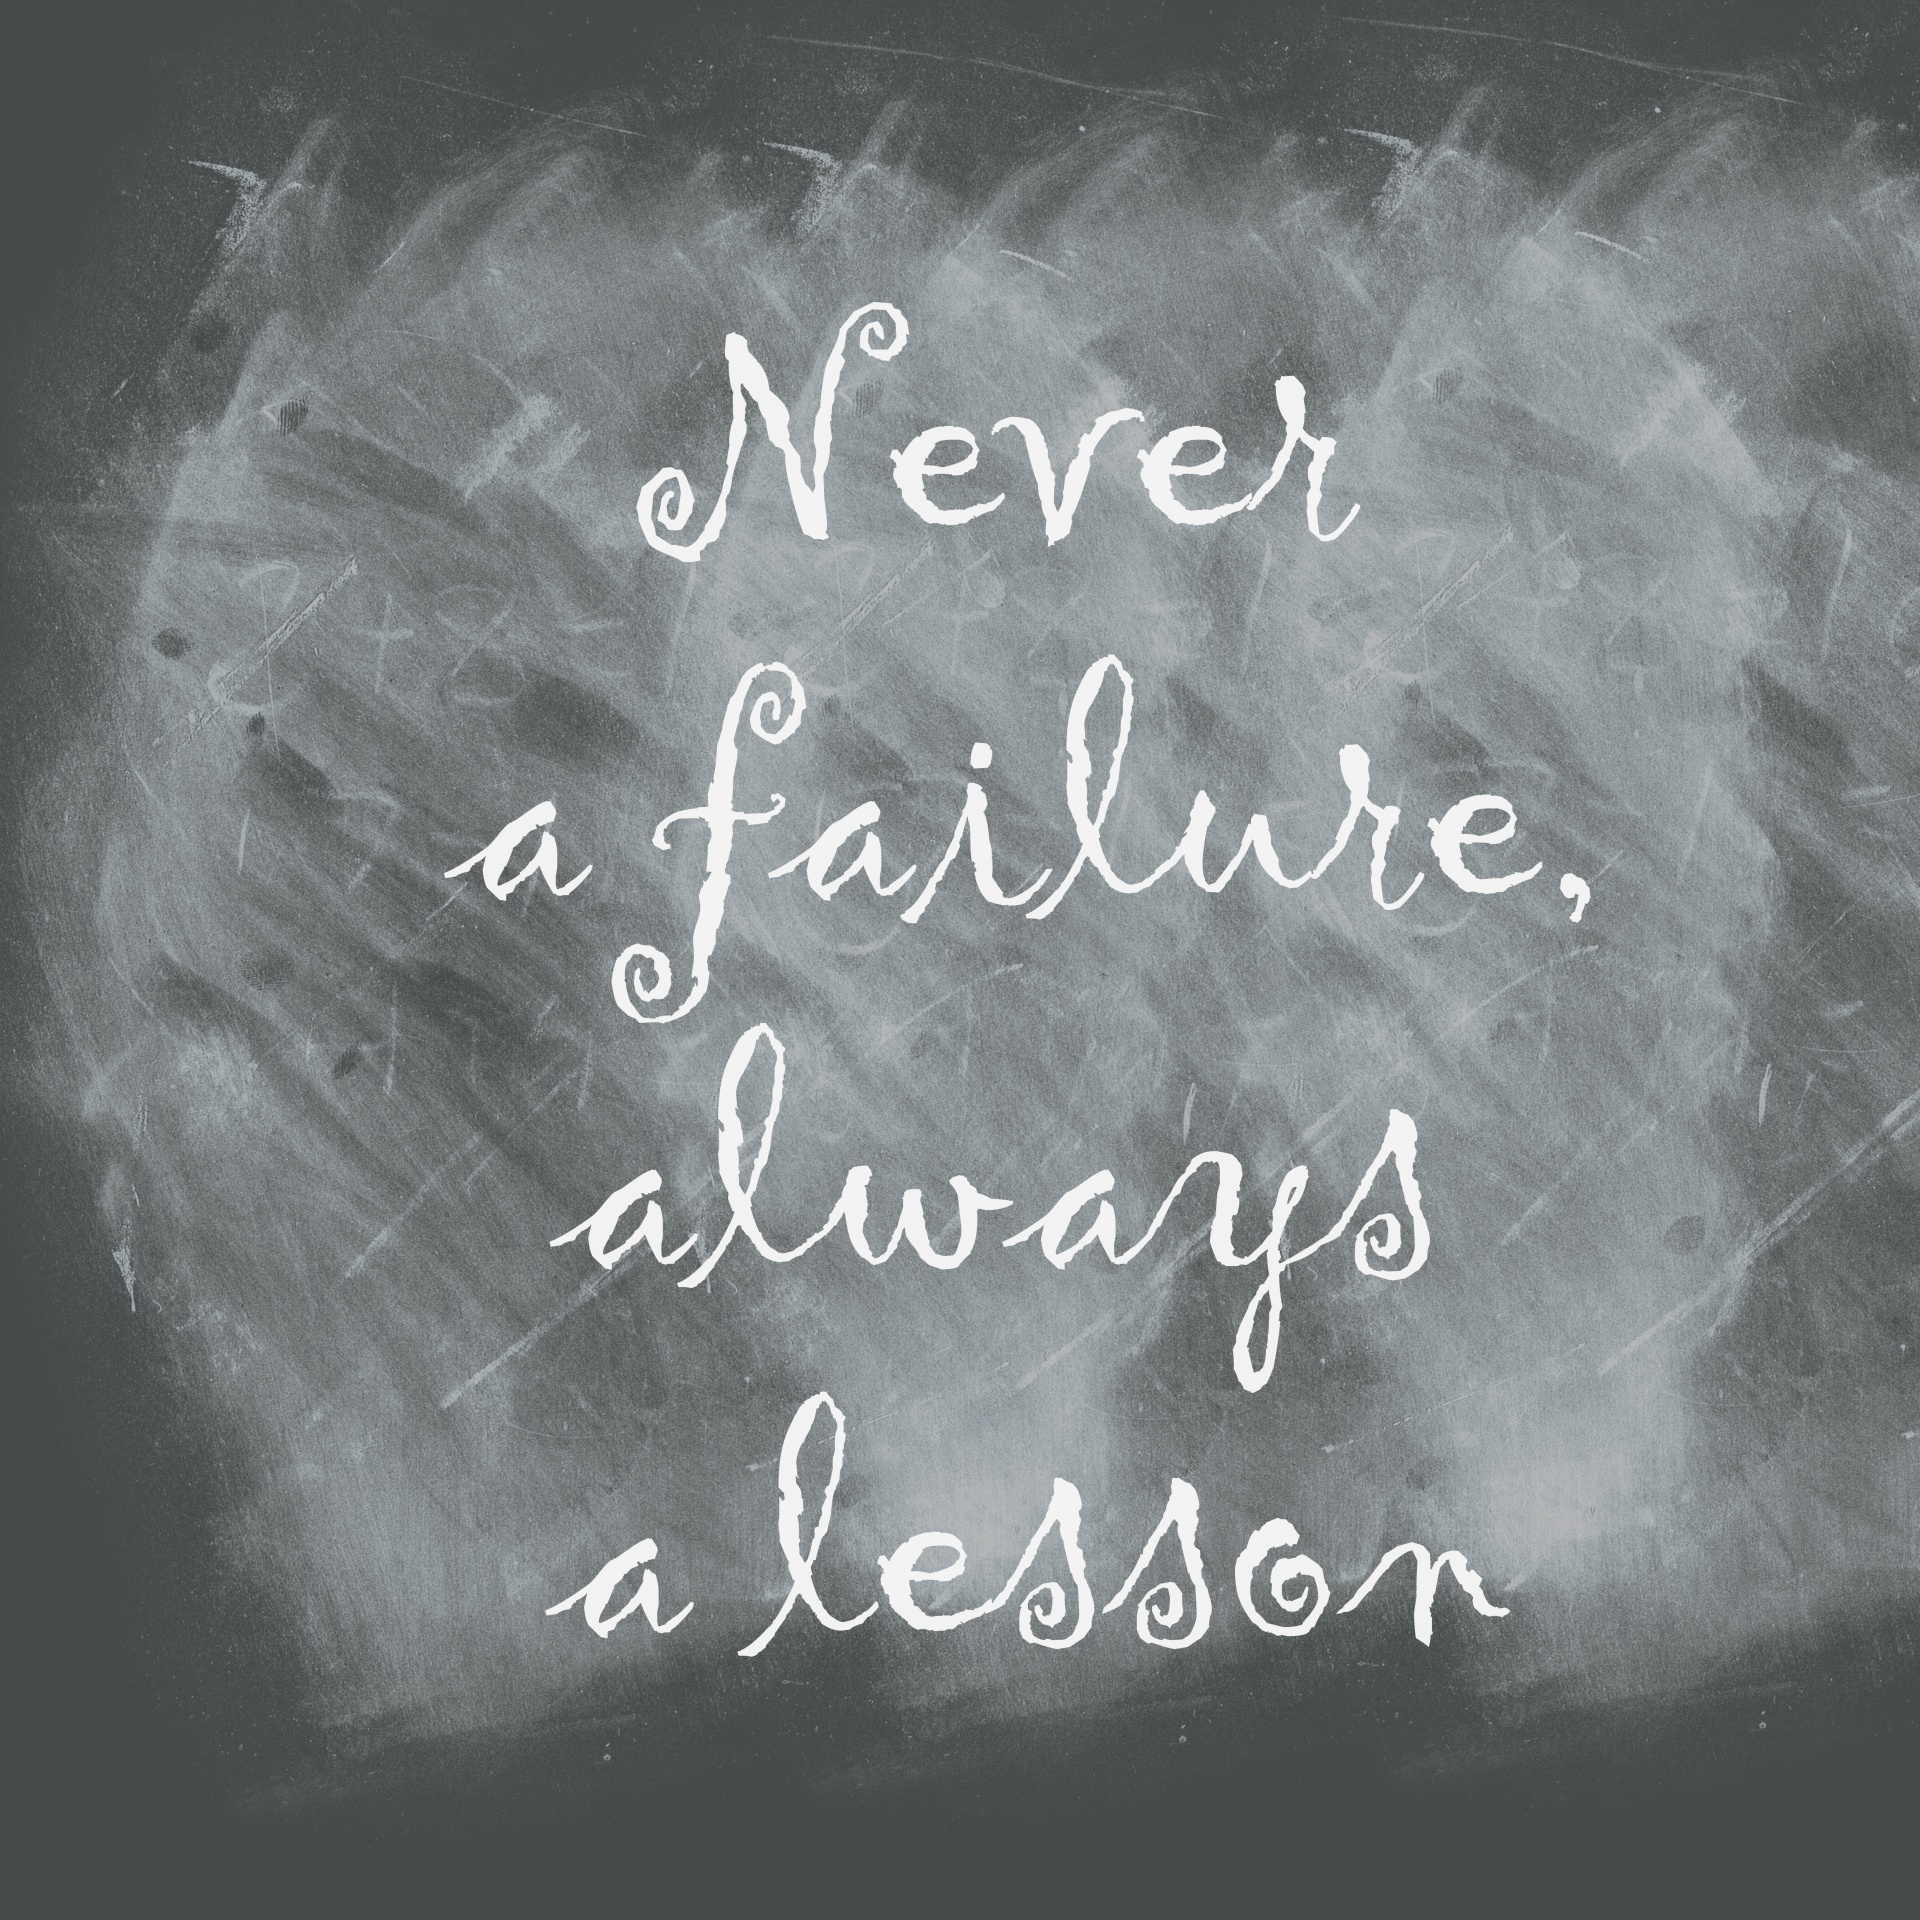 Abc clipart chalkboard quote graphic transparent library Chalkboard,quote,never failure always lesson,blackboard ... graphic transparent library